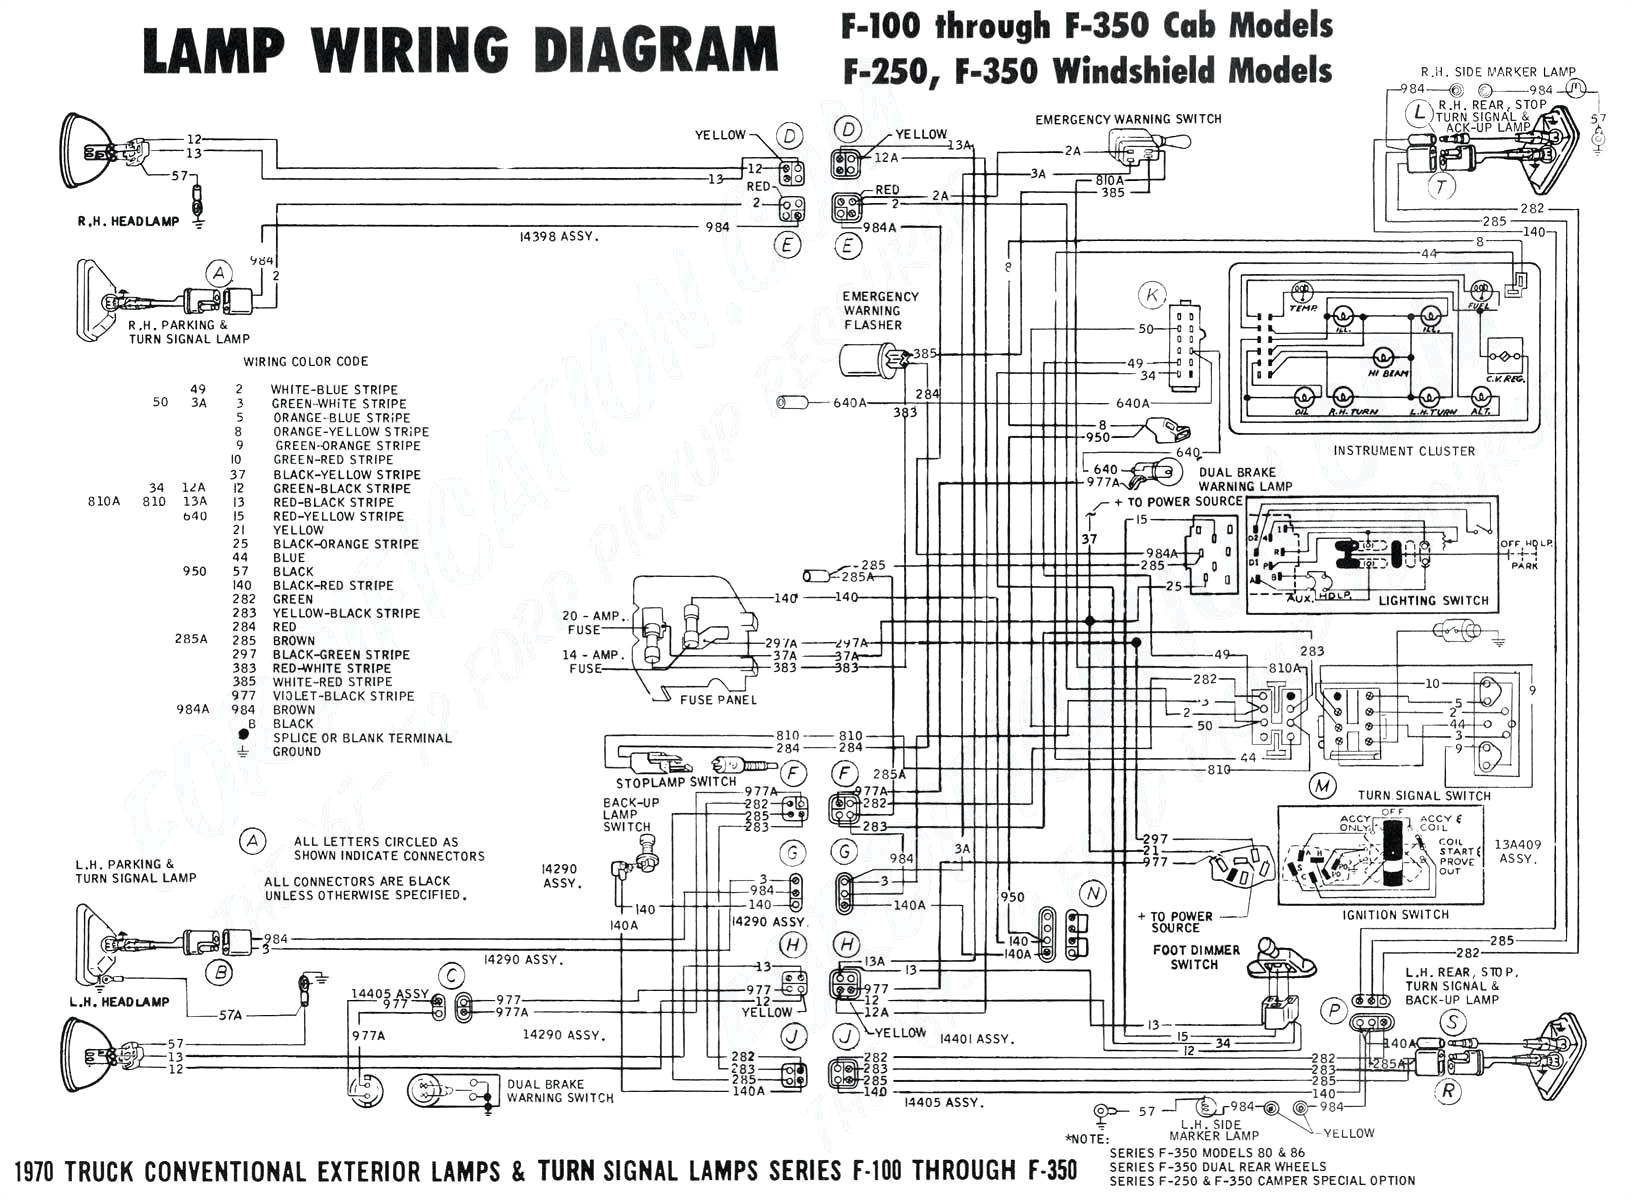 pioneer car stereo wiring luxury pioneer wire wiring harness 14 pin deh 43dh 45dh p76dh o 1499 1 of of pioneer car stereo wiring jpg